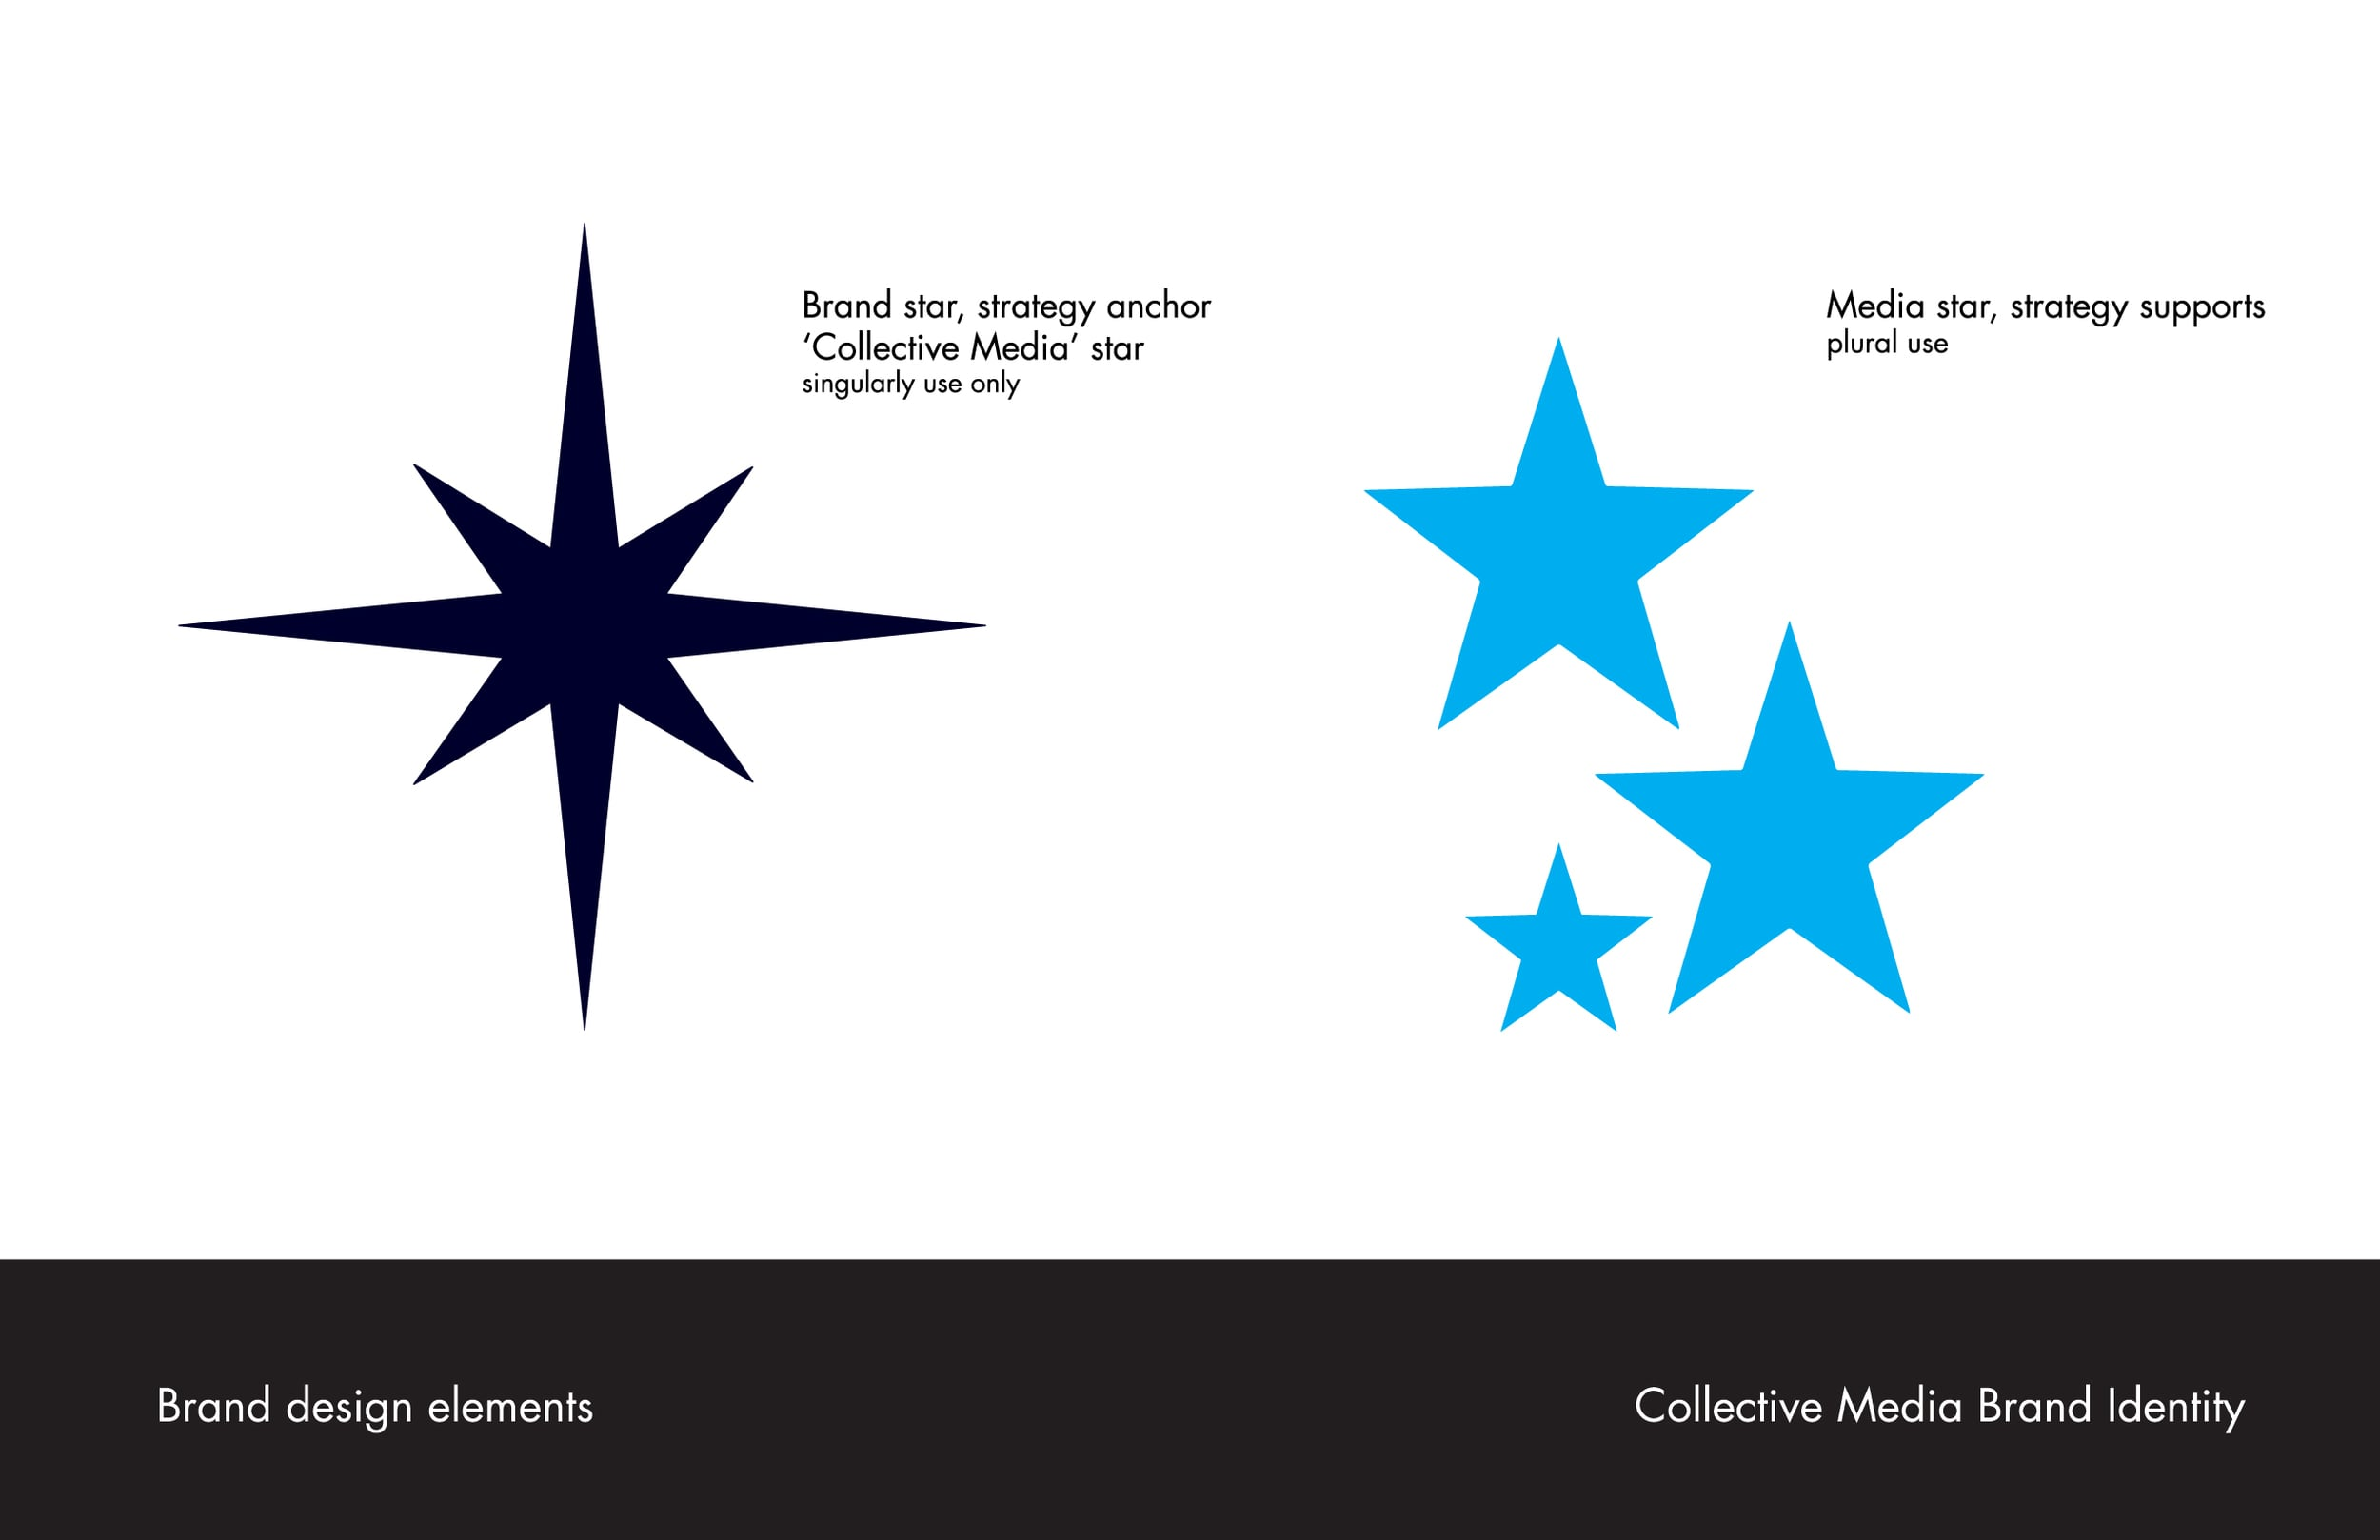 Collective-Media_Brand-Identity_Colours-Fonts-Elements_Guide_Elements.jpg